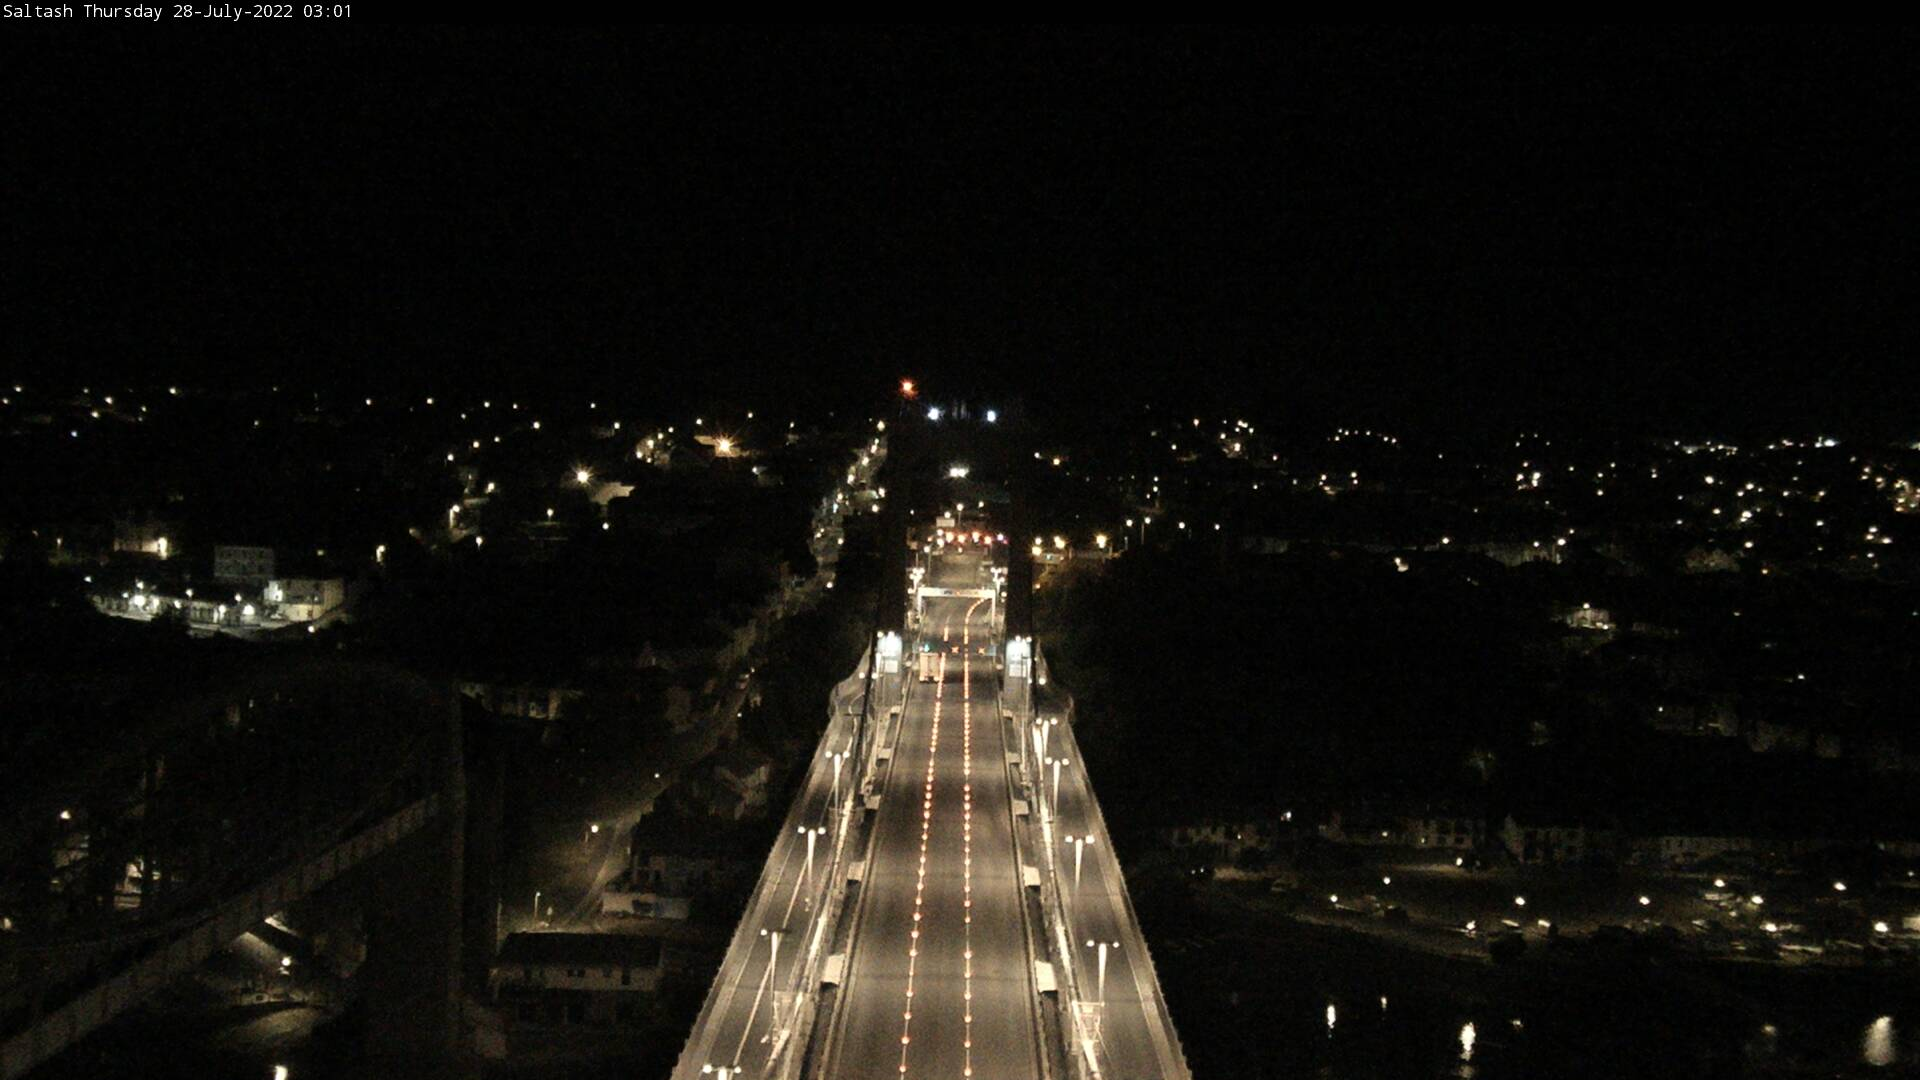 Saltash from Bridge Tower